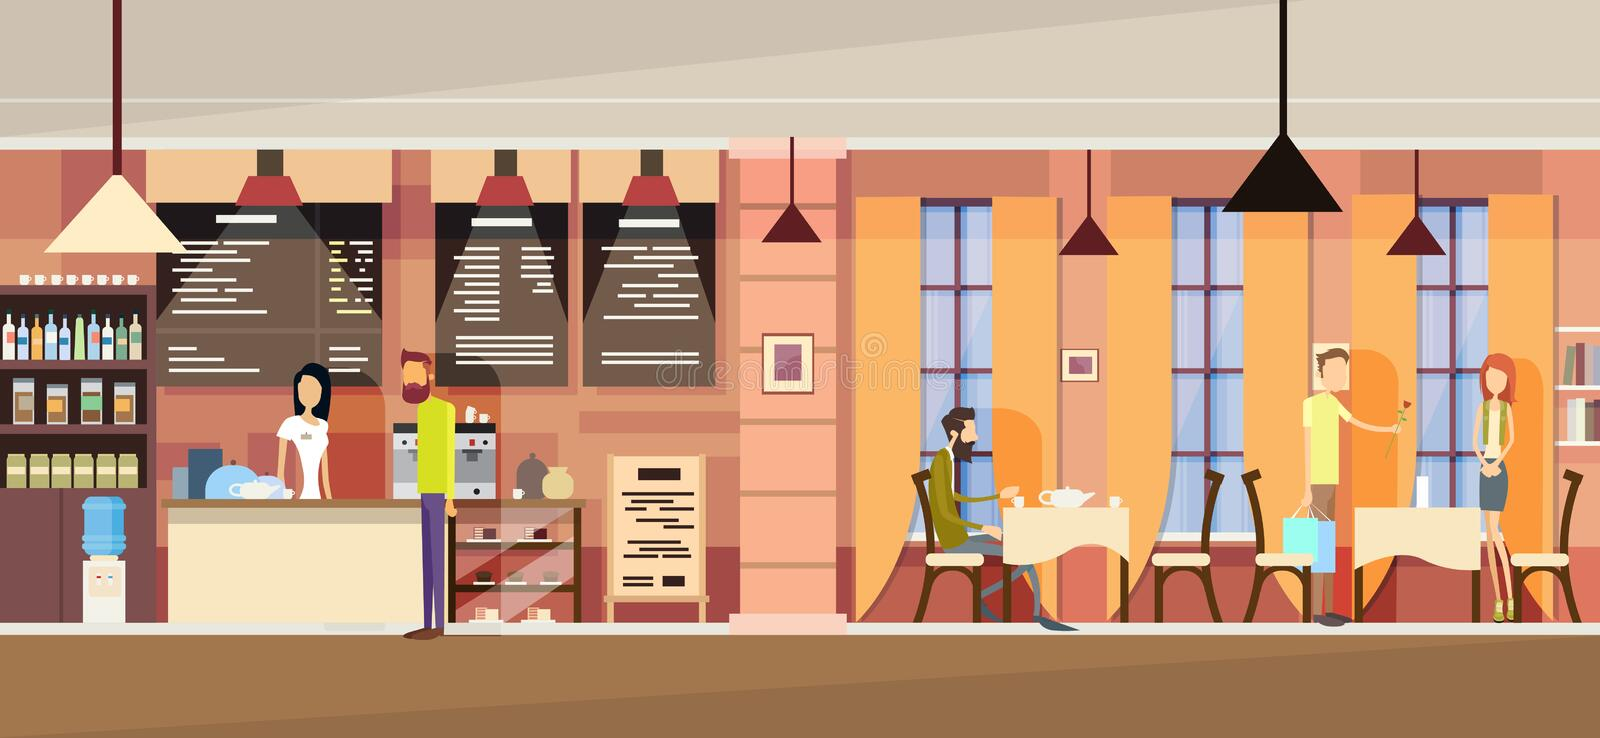 Casual People Group In Modern Cafe, Waitress Chatting, Couple Date, Students University Campus vector illustration